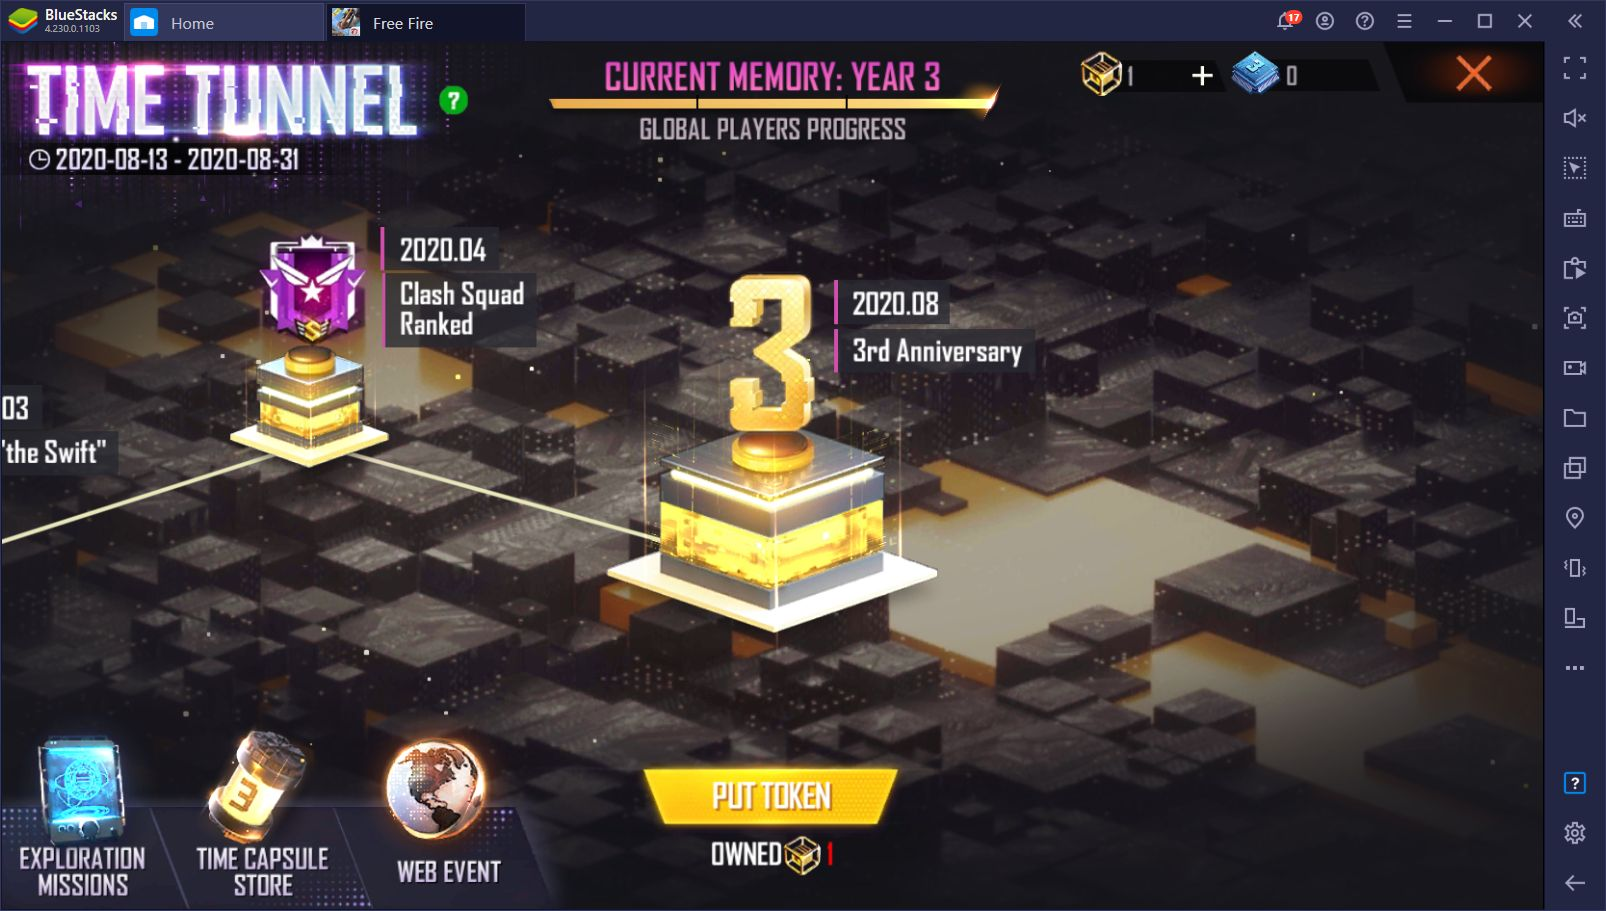 Free Fire 3rd Anniversary – How to Farm Event Currency and Claim Unique Rewards